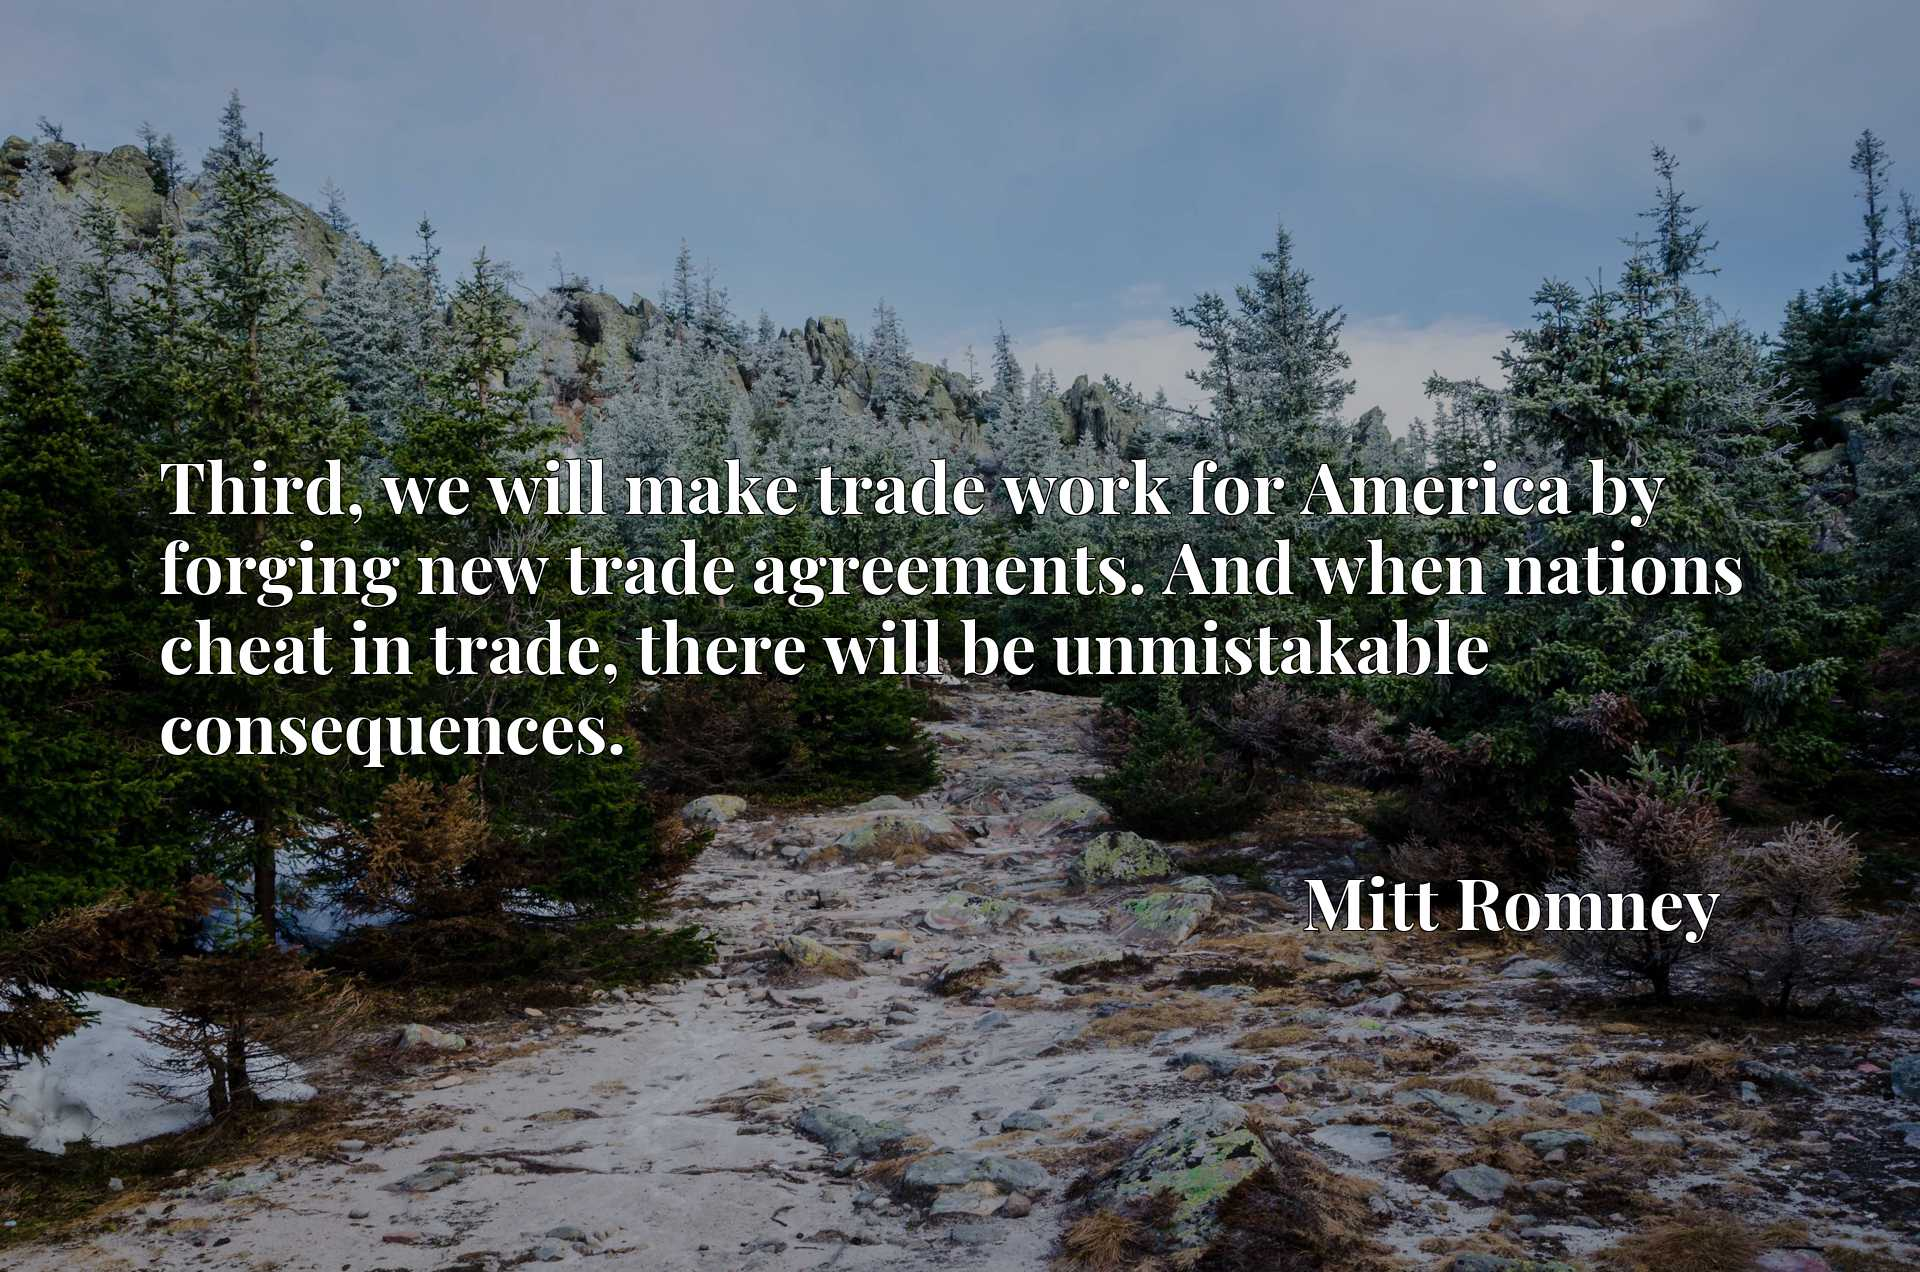 Third, we will make trade work for America by forging new trade agreements. And when nations cheat in trade, there will be unmistakable consequences.